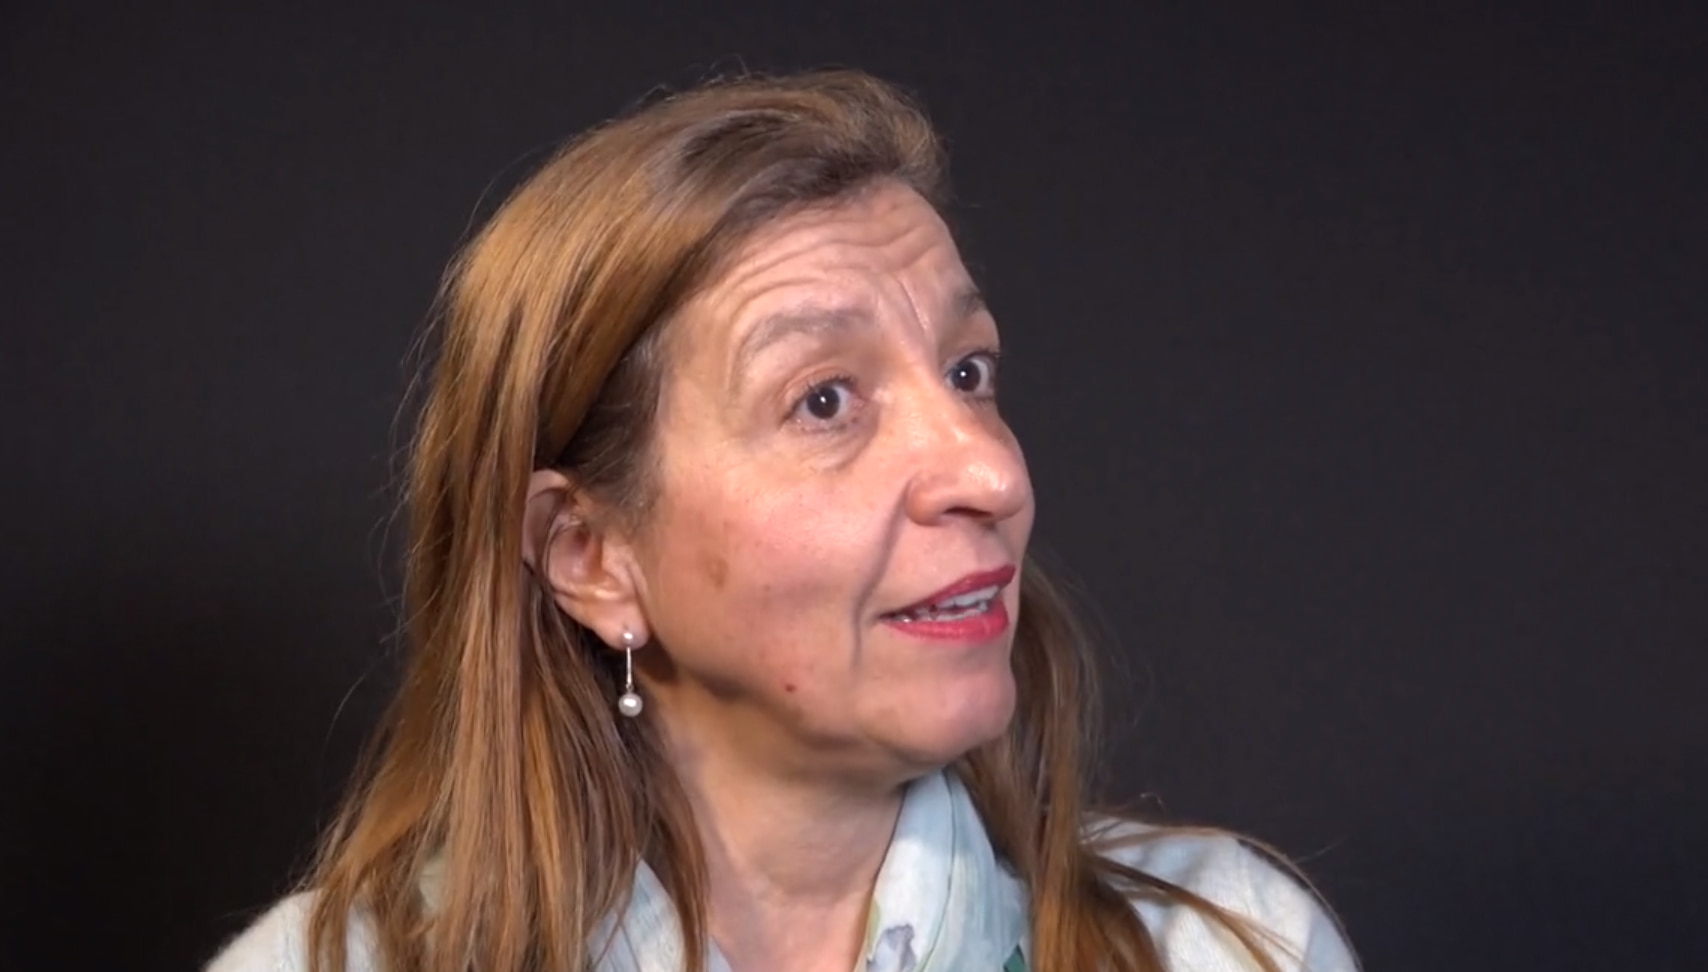 Candida Adkins as shown in RAF Stories